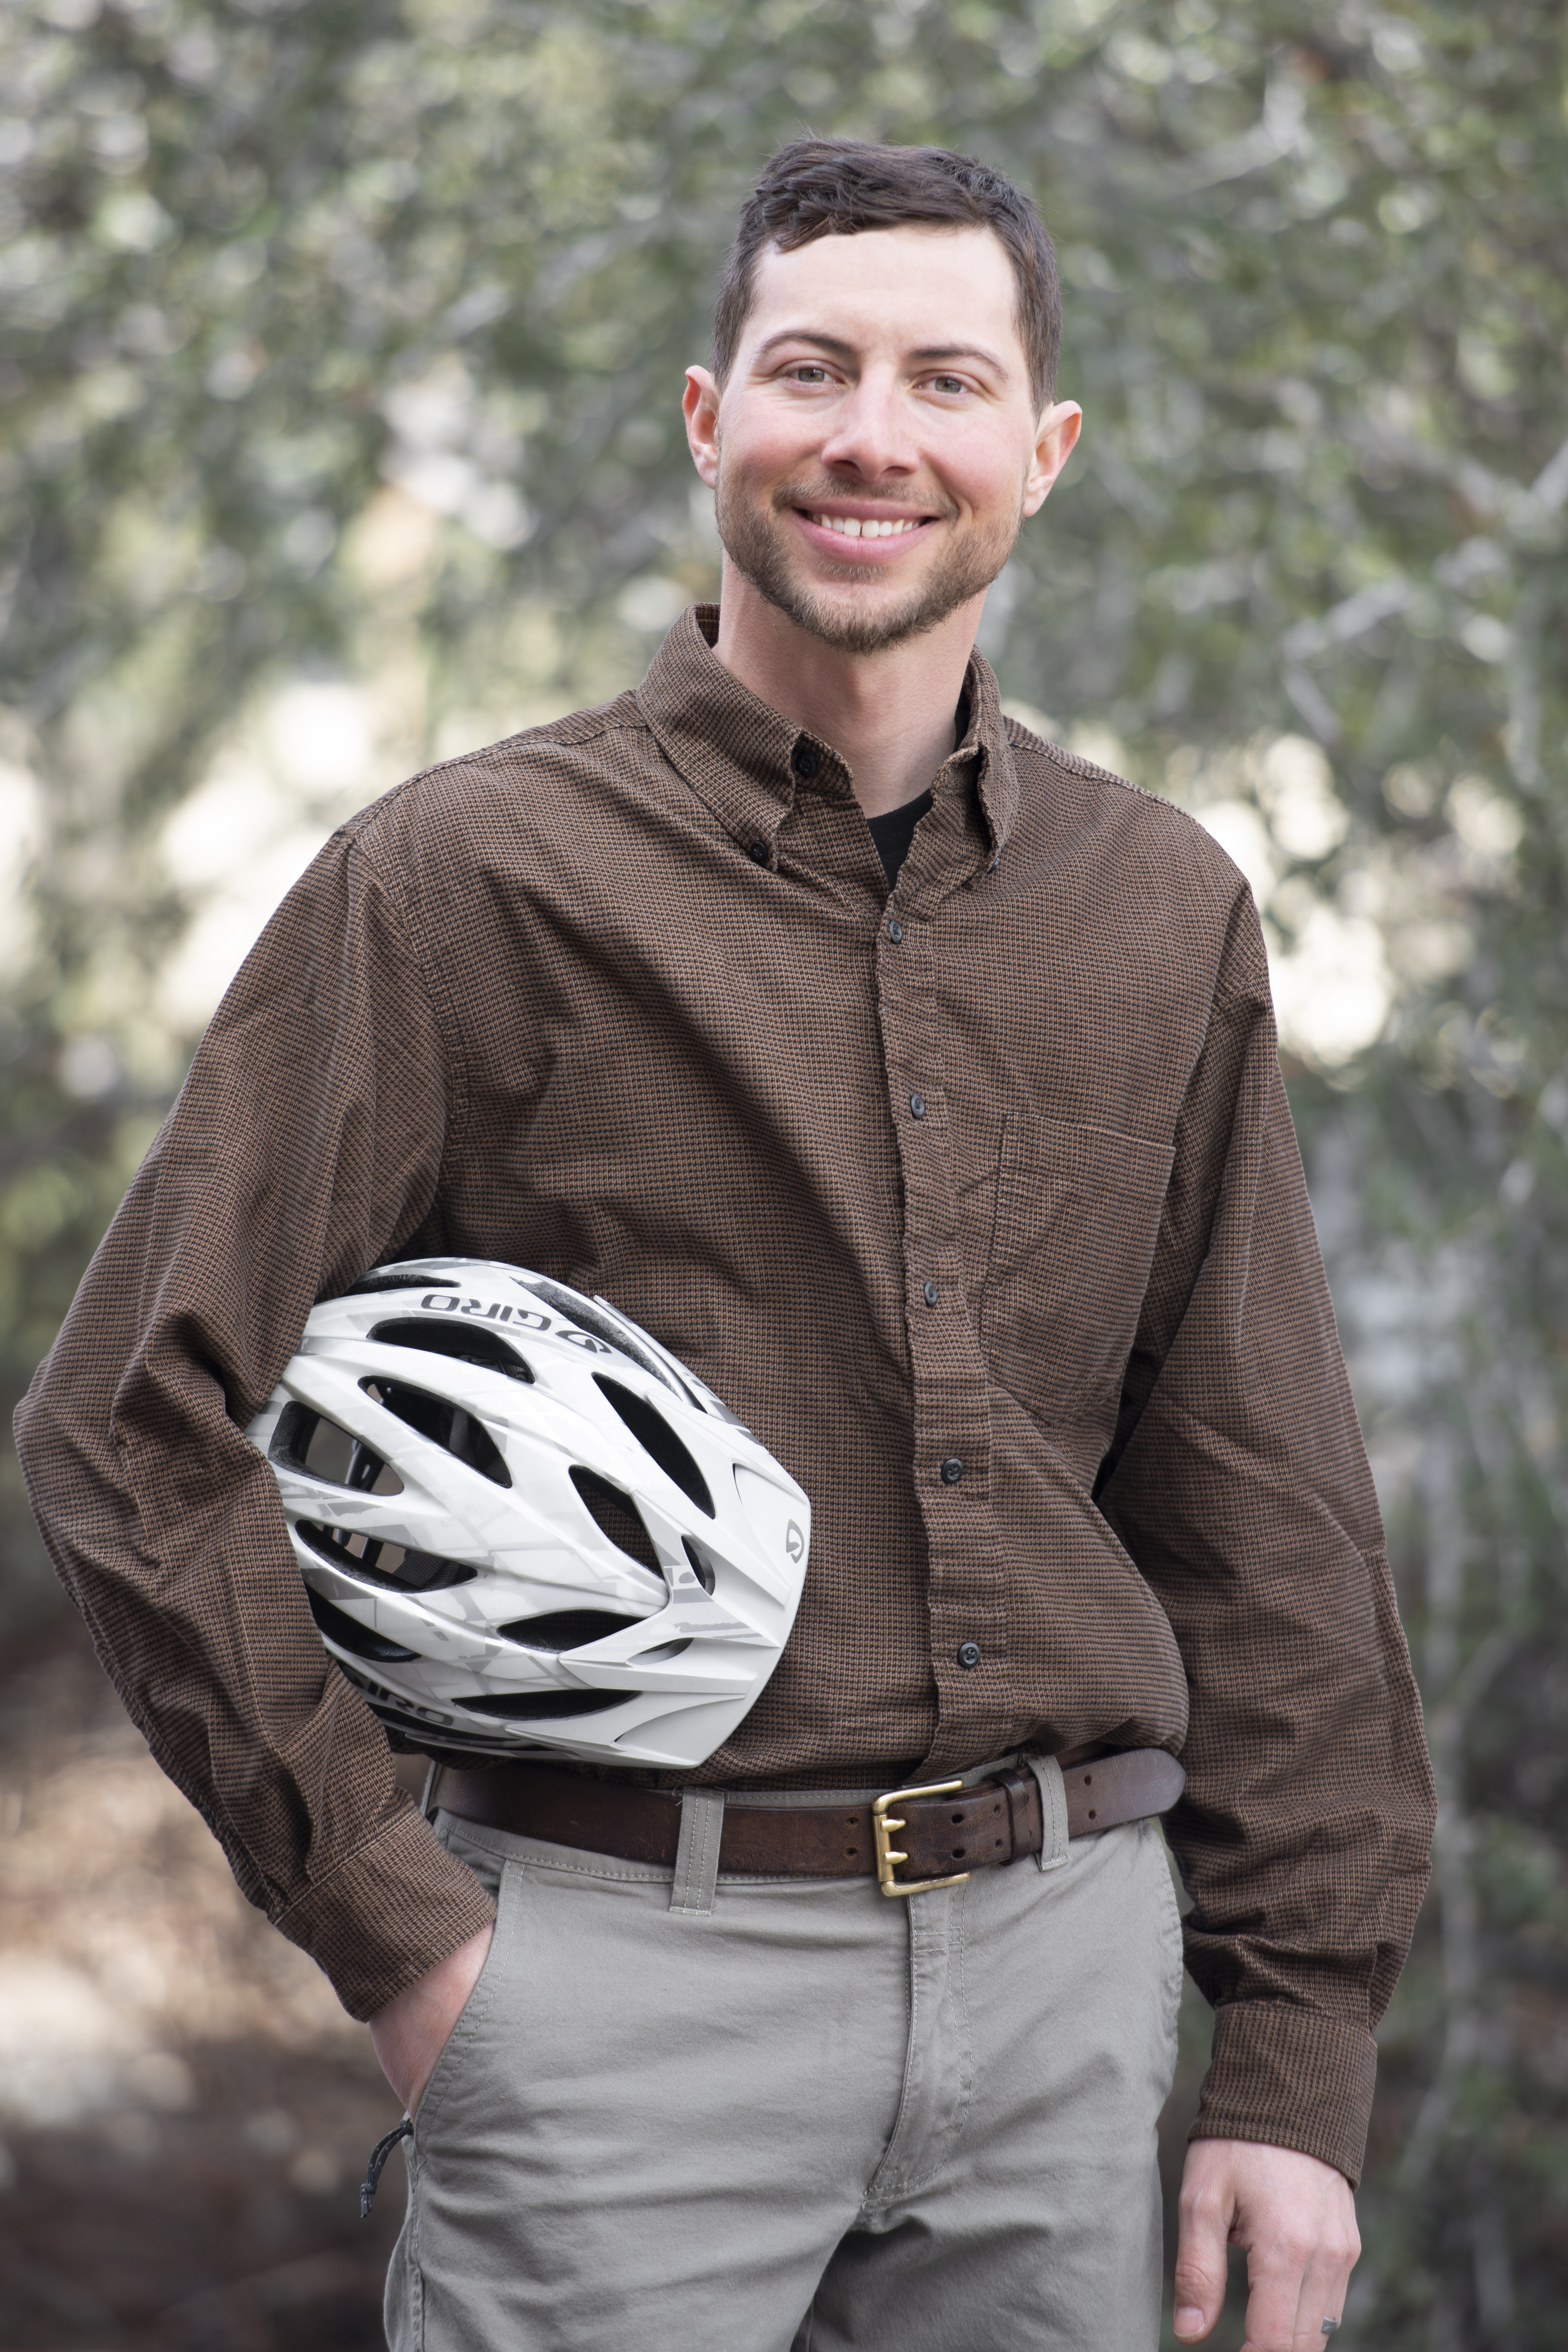 Gabe Finkelstein, Public Safety, Bike Shop, portrait, Allison Corona photo